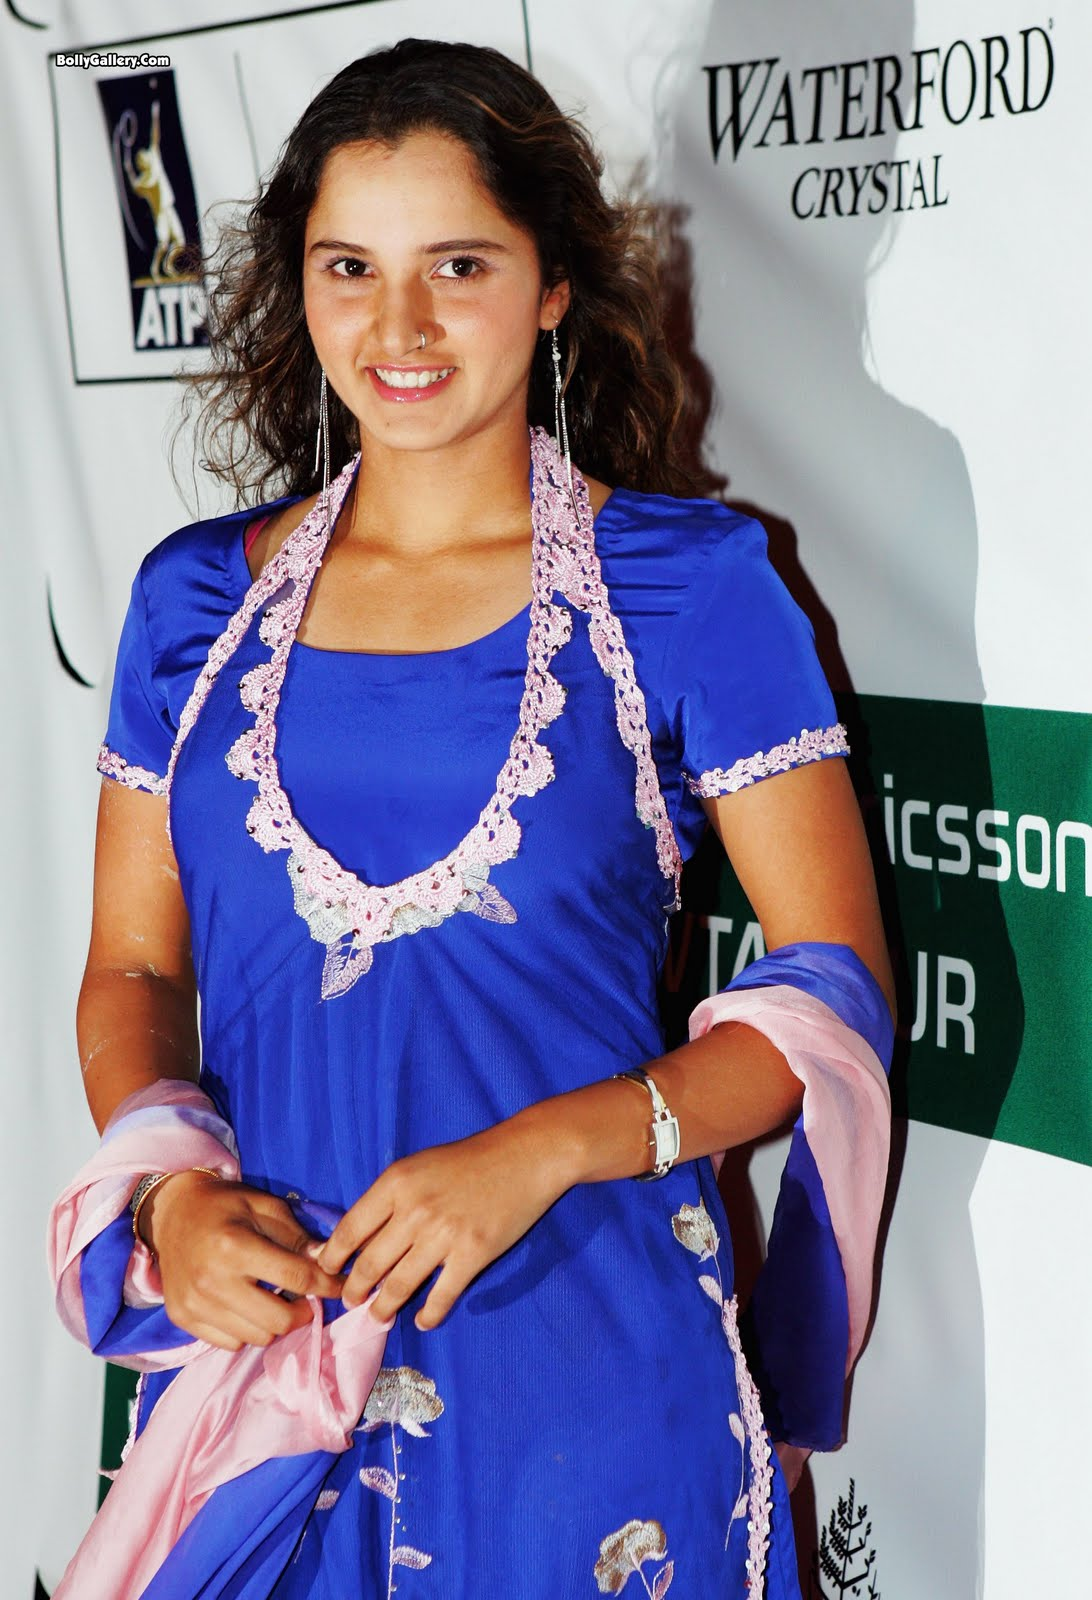 Nue images of sania mirza at girls of desires